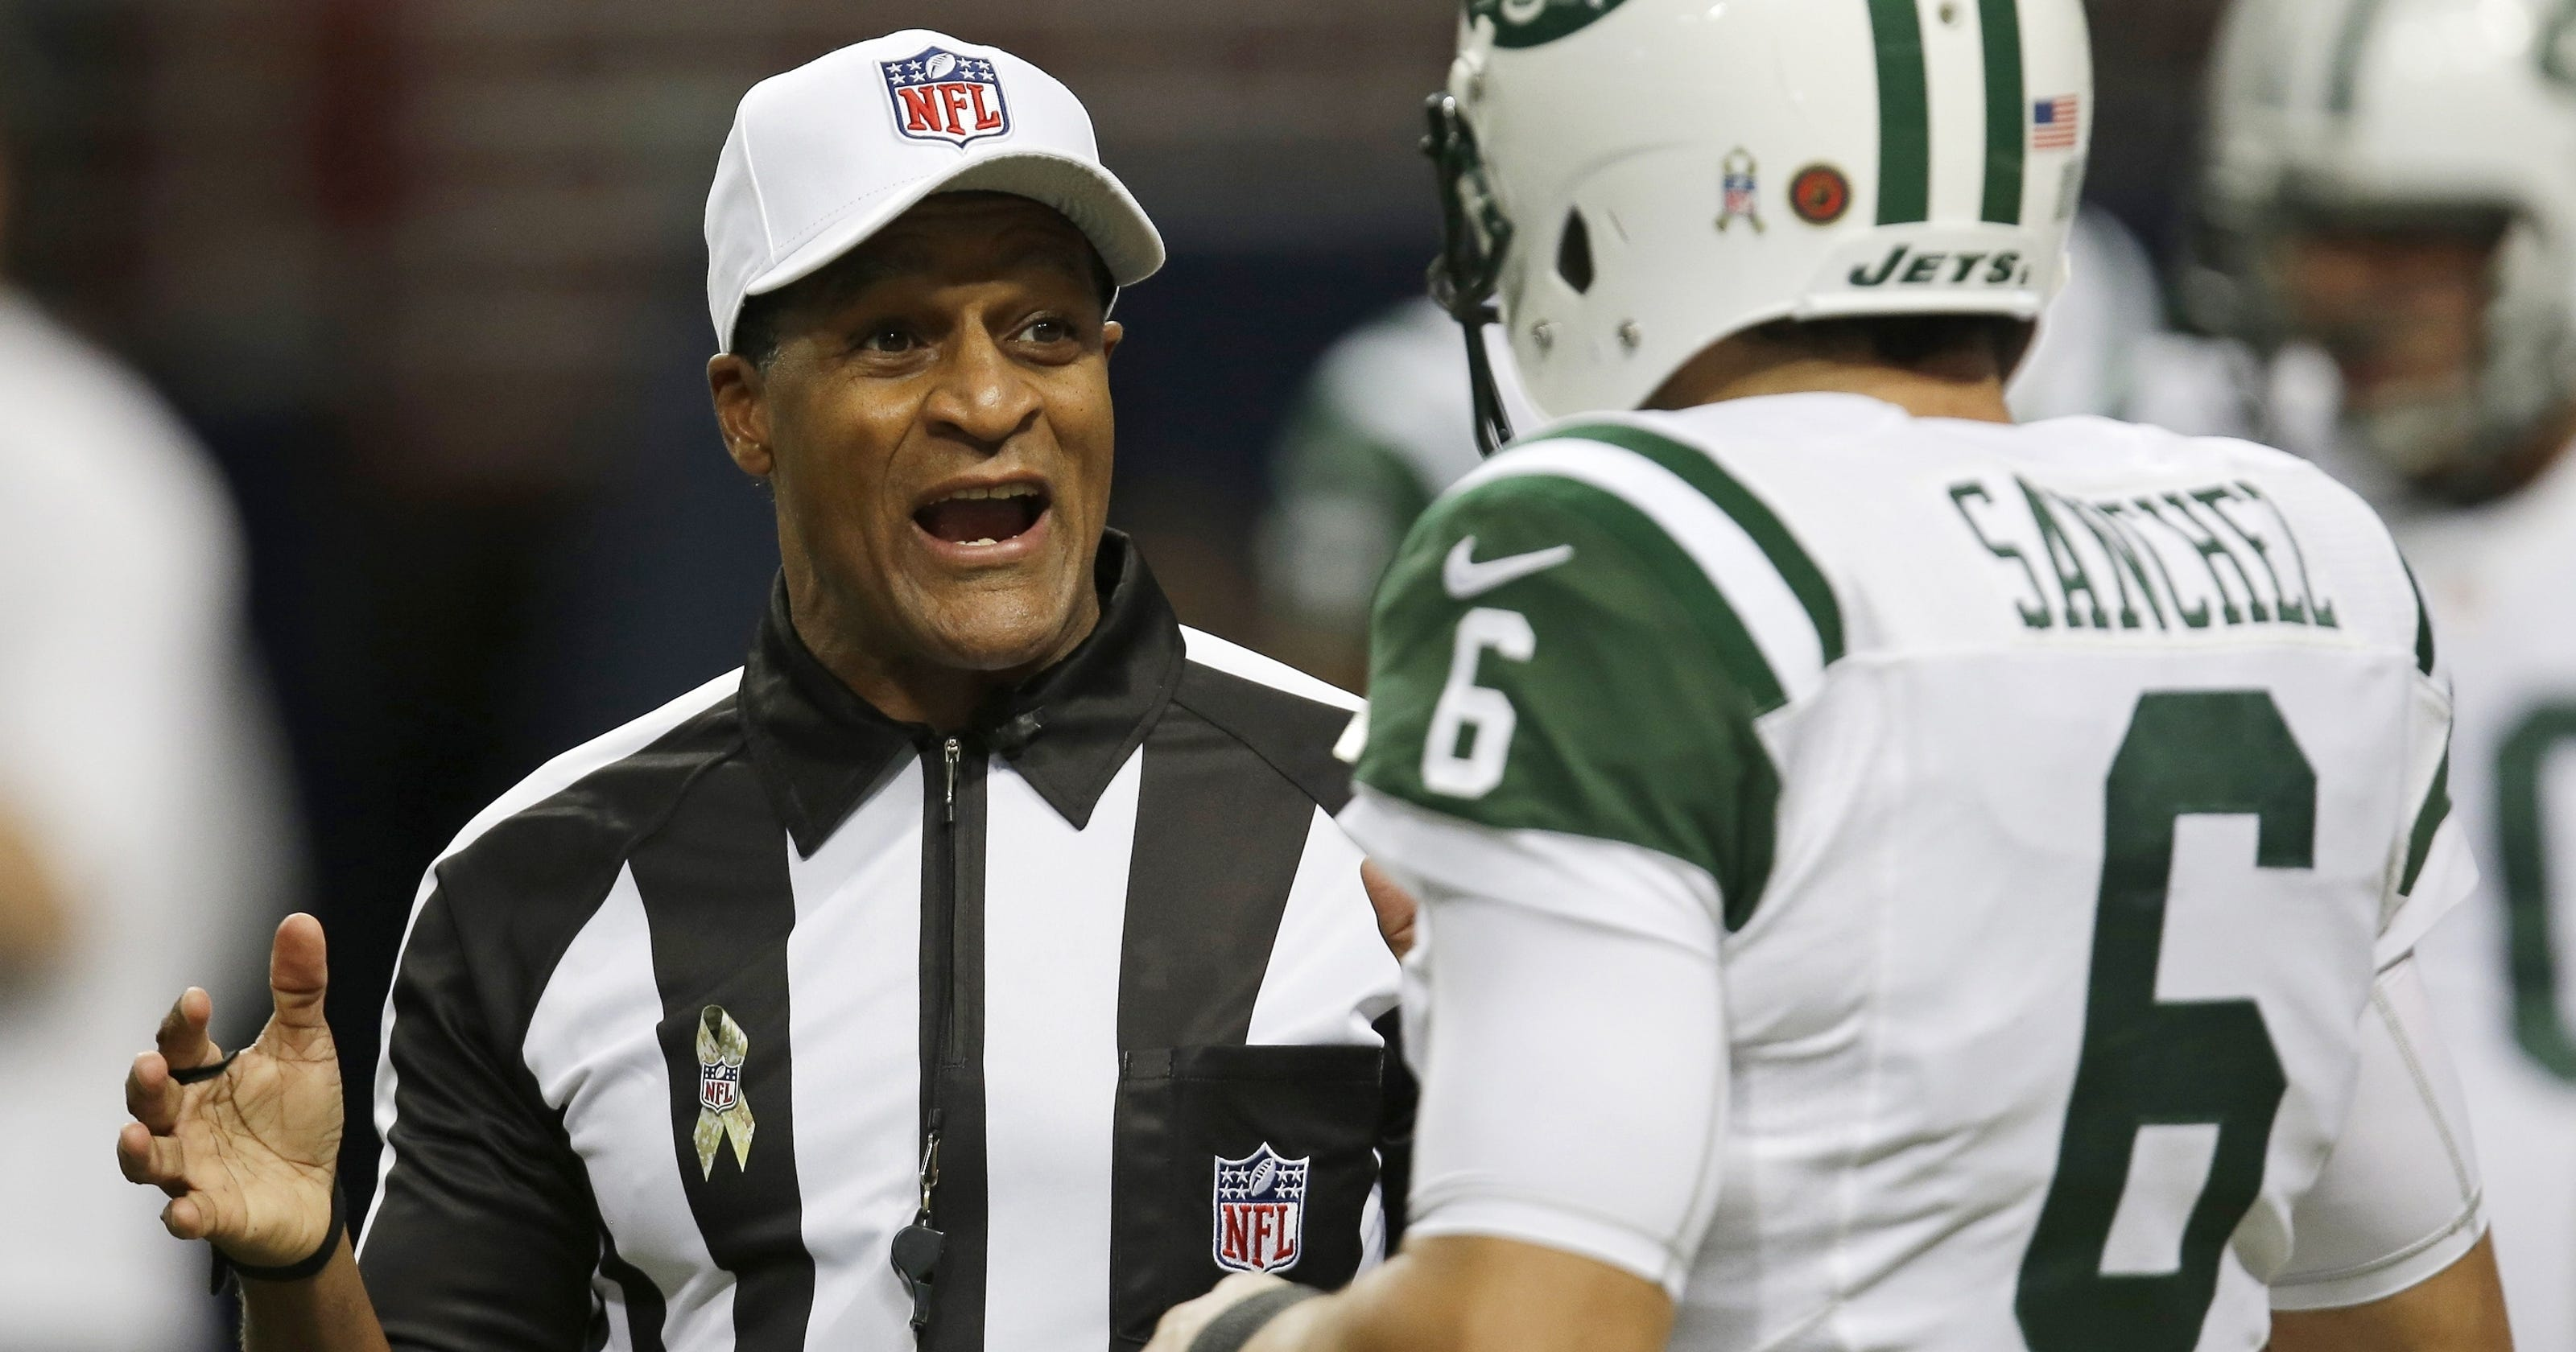 NFL announces Jerome Boger as Super Bowl XLVII referee 834cf9866